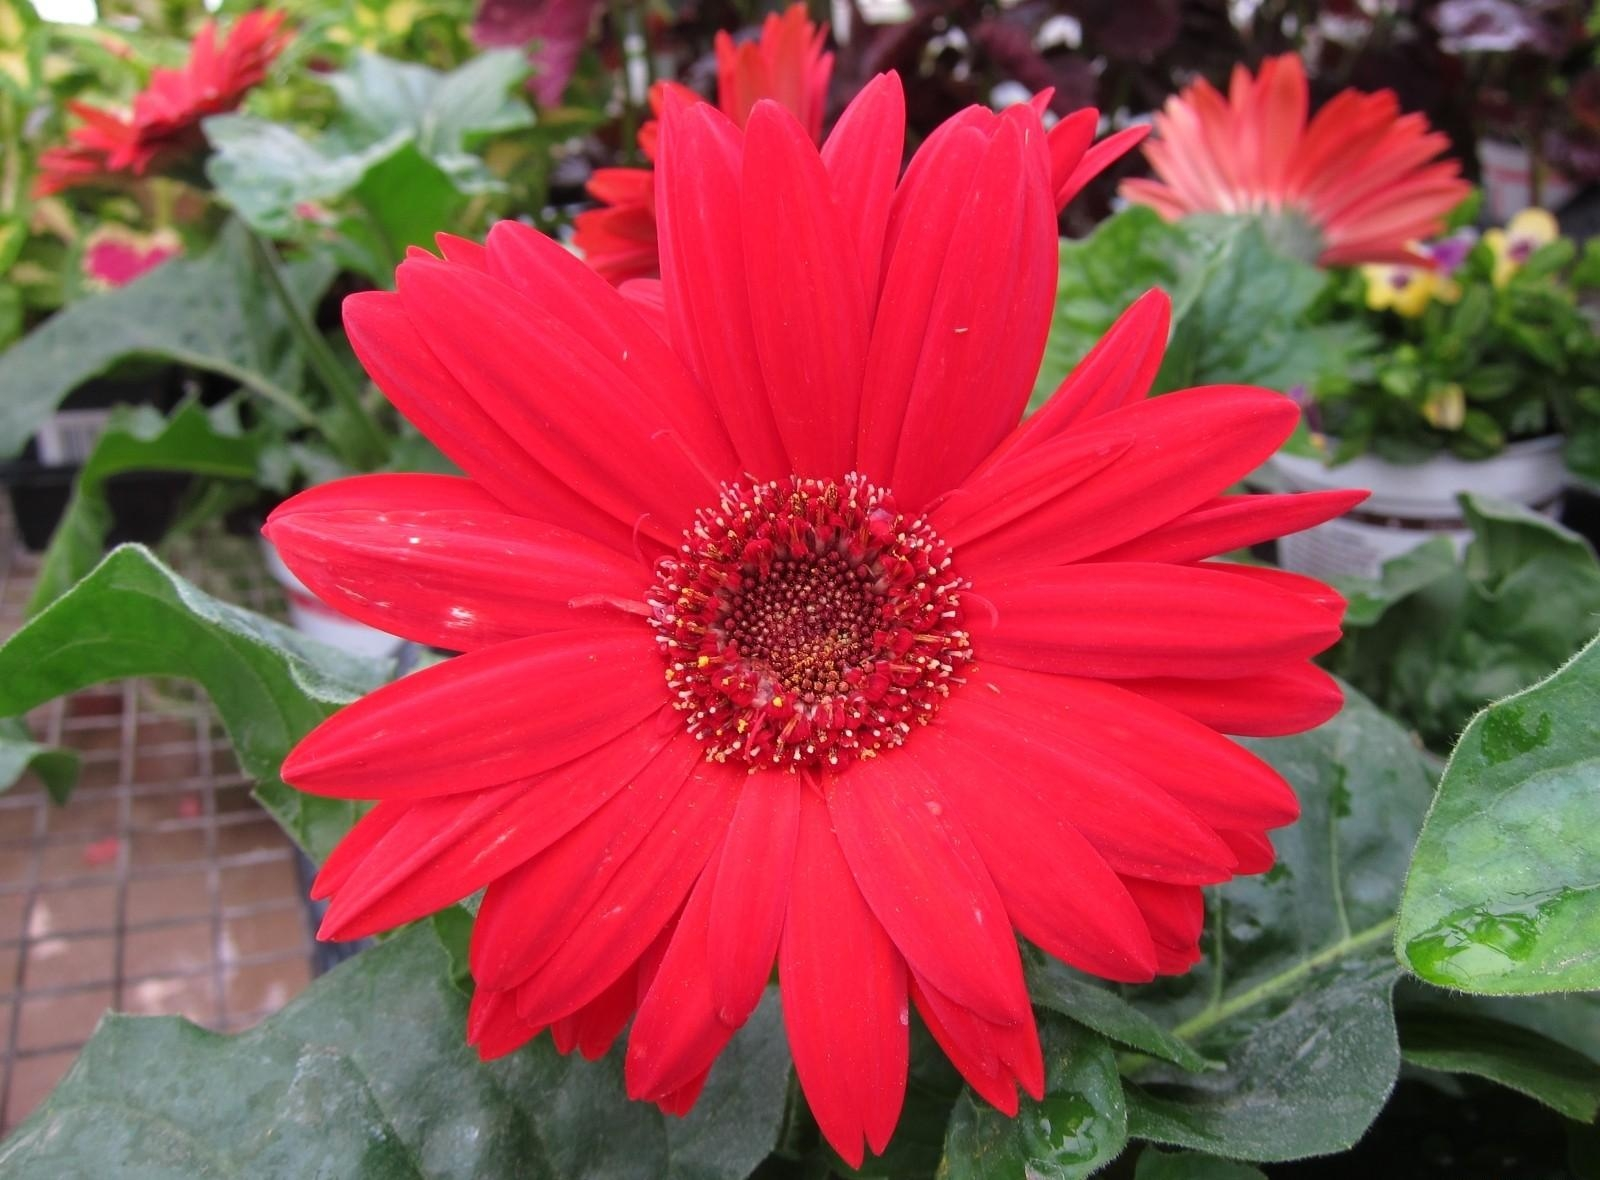 100578 download wallpaper Flowers, Gerbera, Flower, Garden, Close-Up, Leaves screensavers and pictures for free